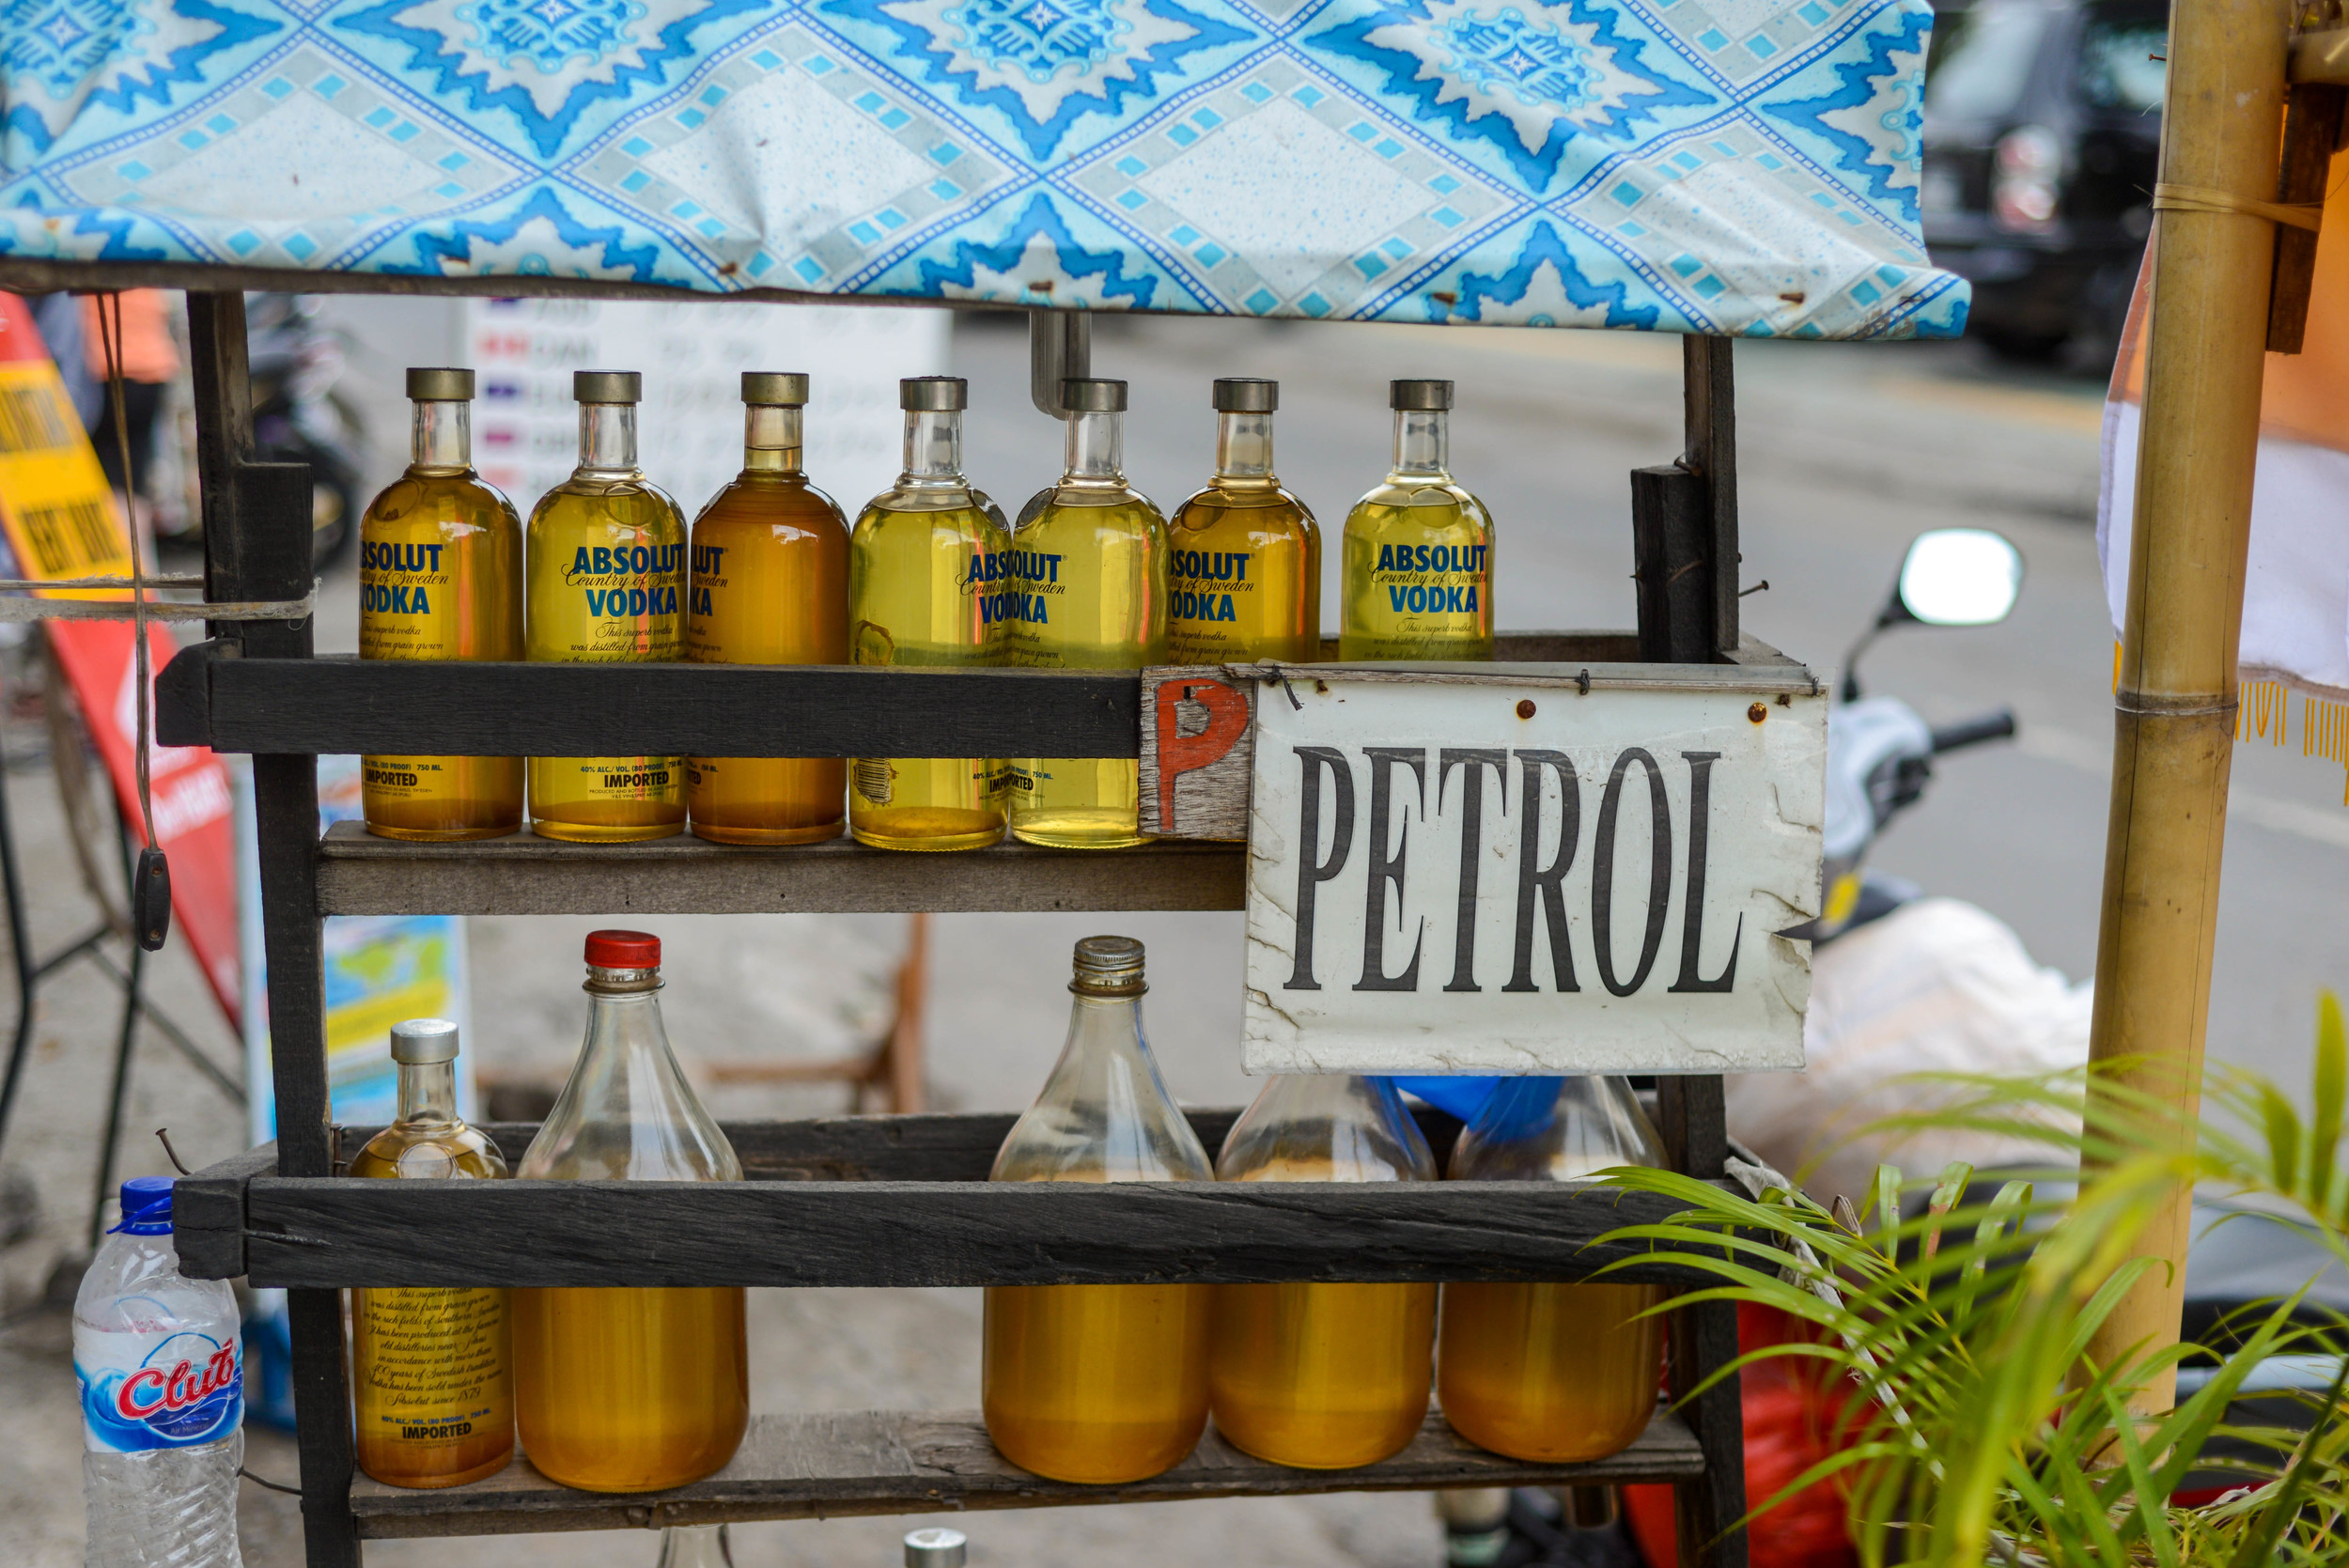 Petrol sold in Vodka bottles.